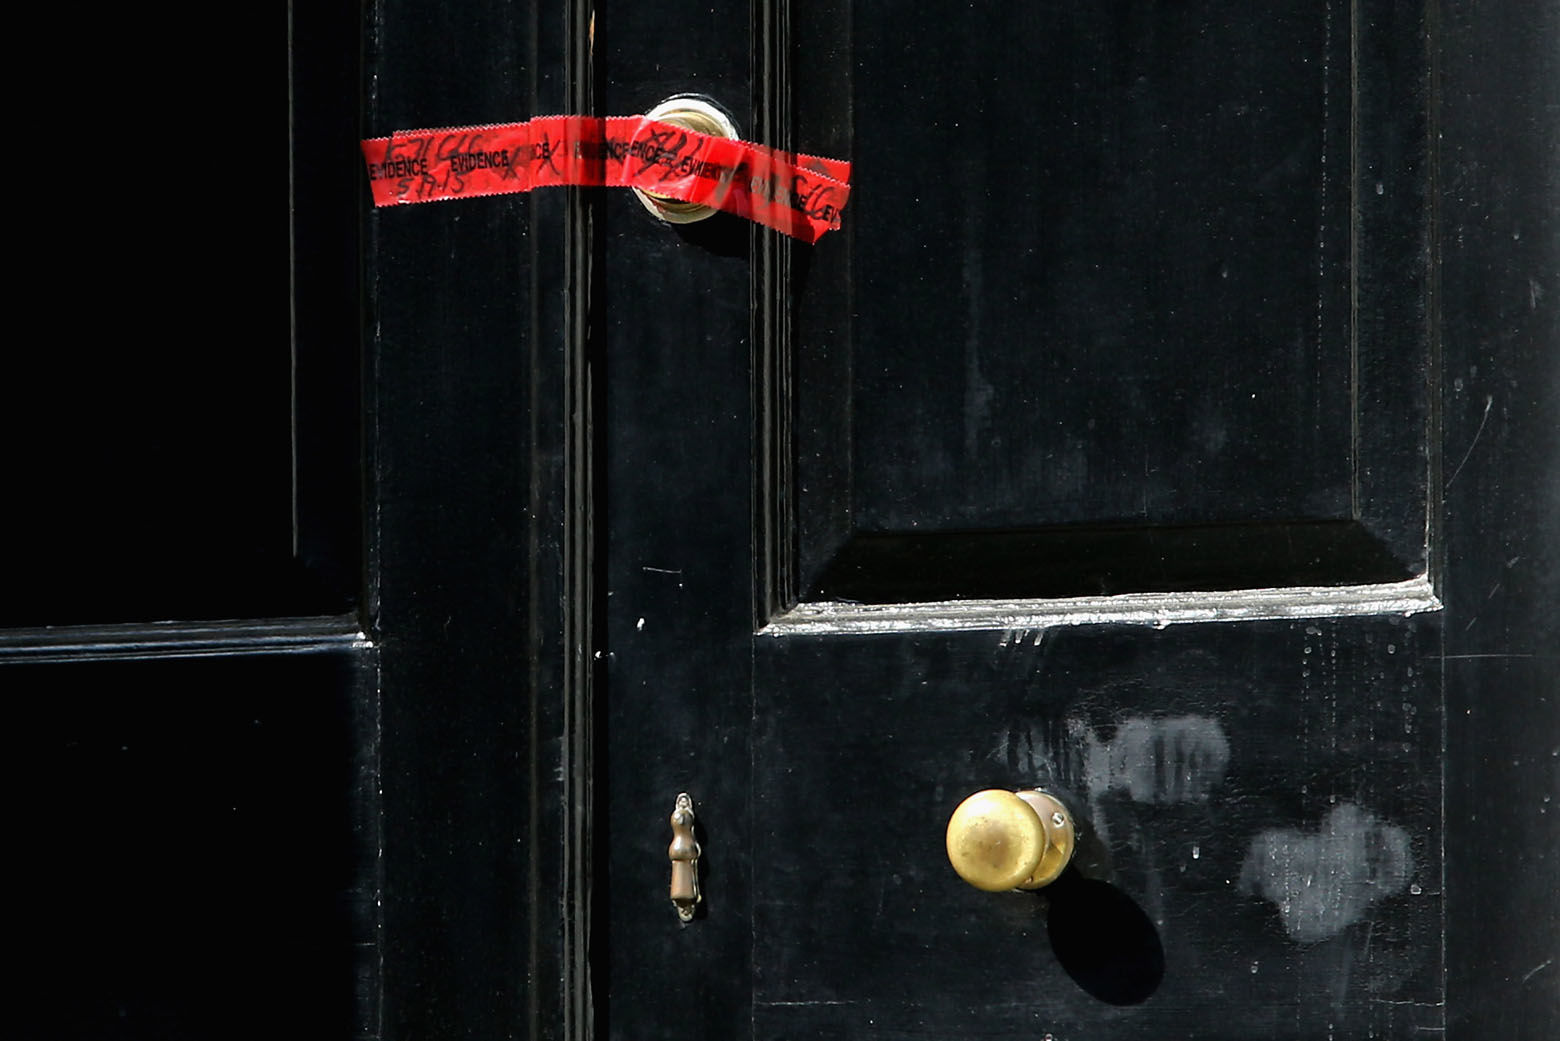 WASHINGTON, DC - MAY 19:  Red crime scene tape seals the front door of a house on the 3200 block of Woodland Drive NW May 19, 2015 in Washington, DC. Firefighters discovered the bodies of Savvas Savopoulos, 46, his wife Amy, 47, their 10-year-old son Philip, and the housekeeper, Veralicia Figueroa, 57, last Thursday afternoon when they responded to a blaze at the house. Two Savopoulos daughters were away in boarding school at the time. Investigators have ruled the deaths homicides and say they could continue to collect evidence at the house for another week.  (Photo by Chip Somodevilla/Getty Images)